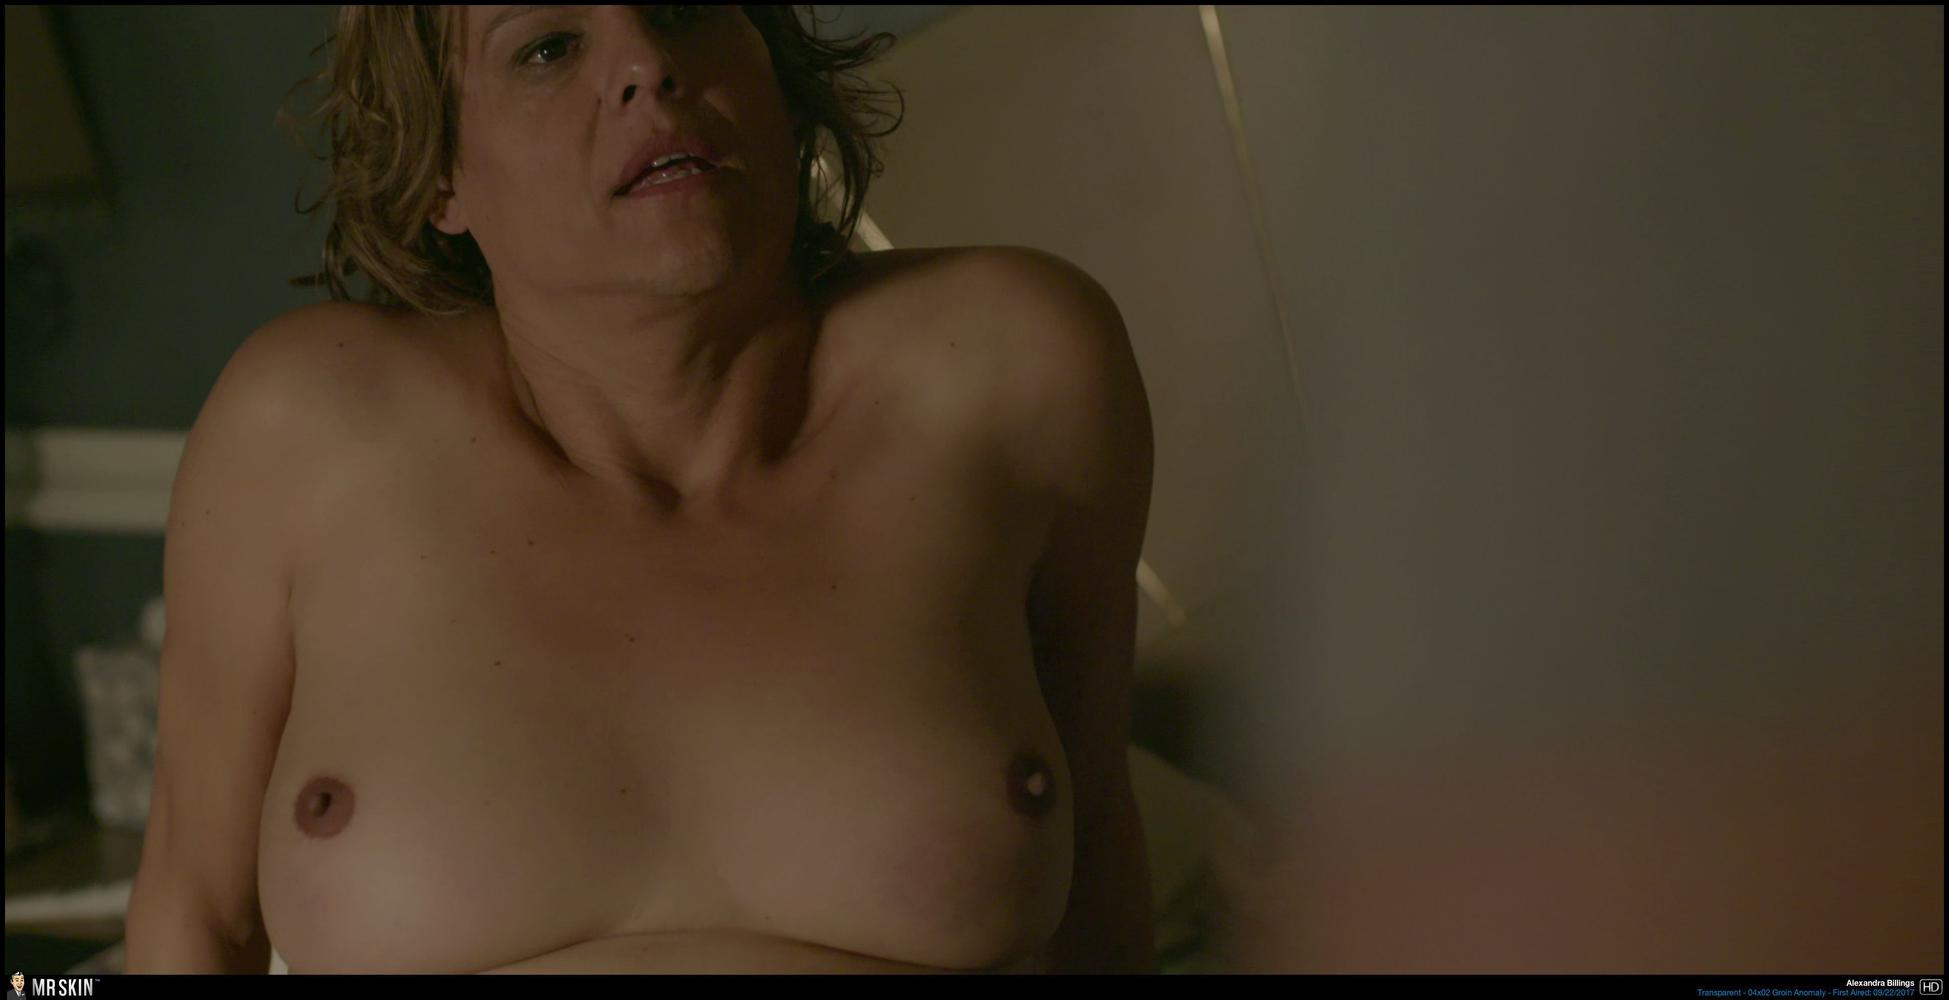 Melora hardin nude pictures